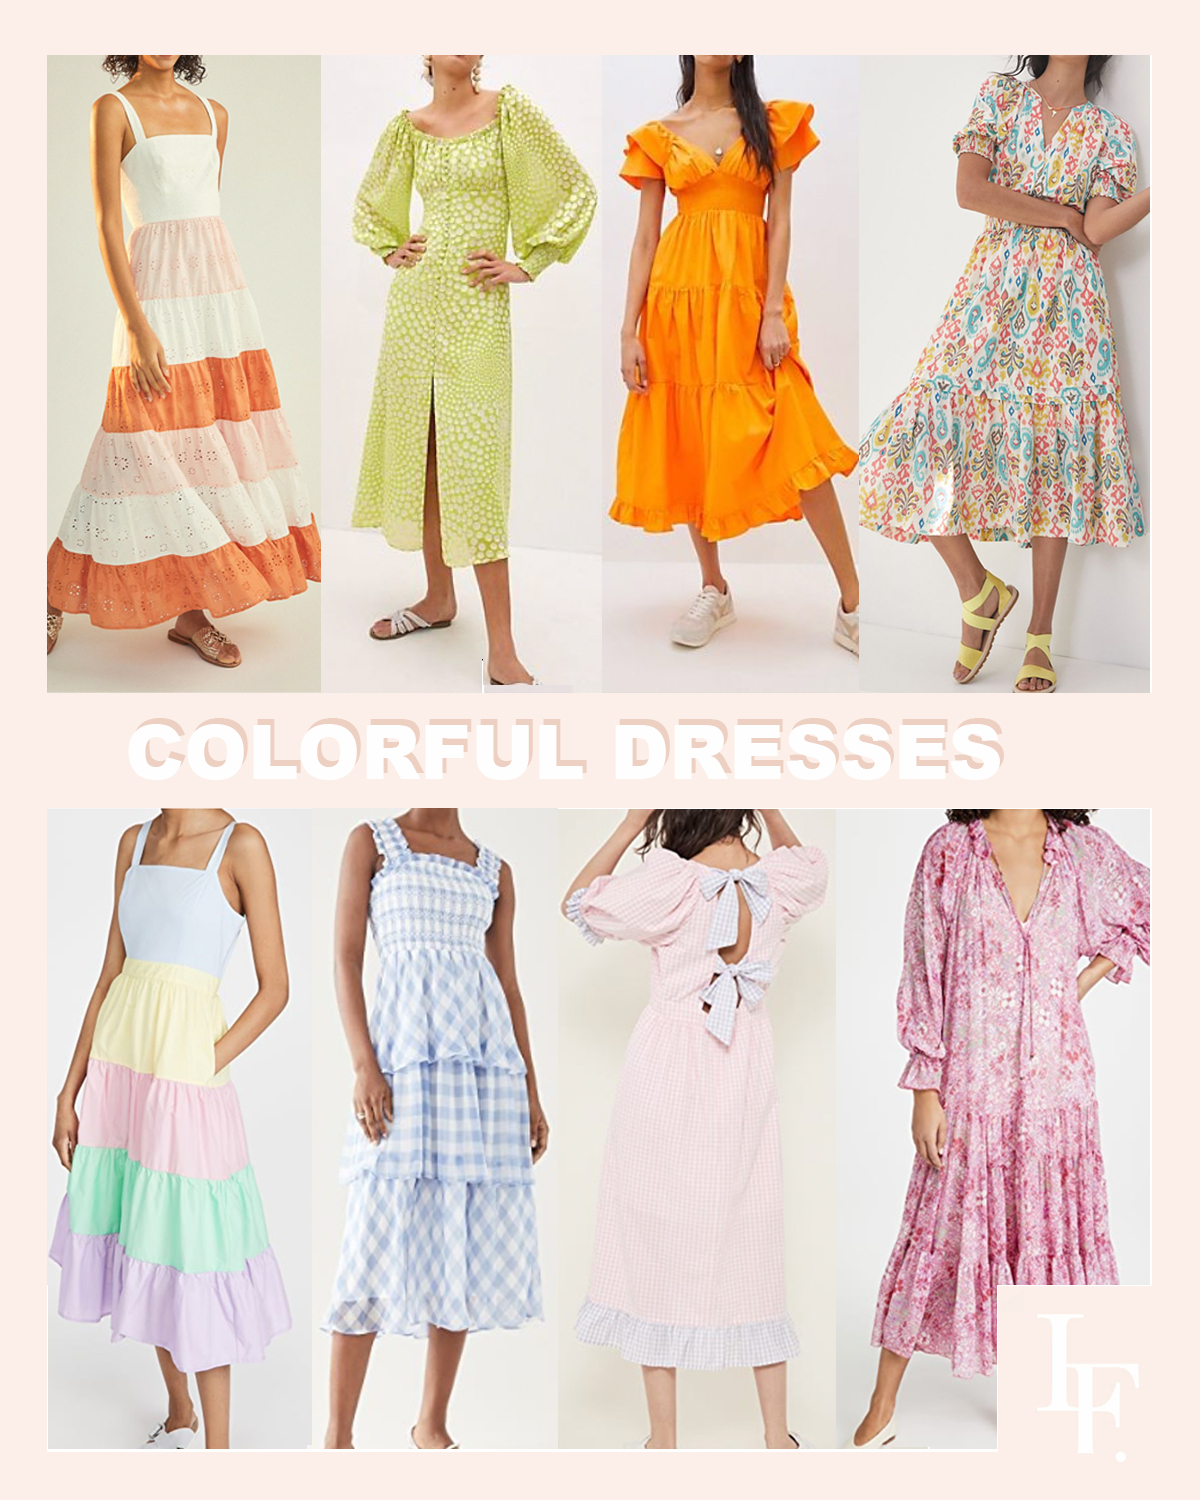 Colorful dress inspiration for spring from Anthropologie and Shopbop style sale, by Lombard & Fifth blog Veronica Levy.